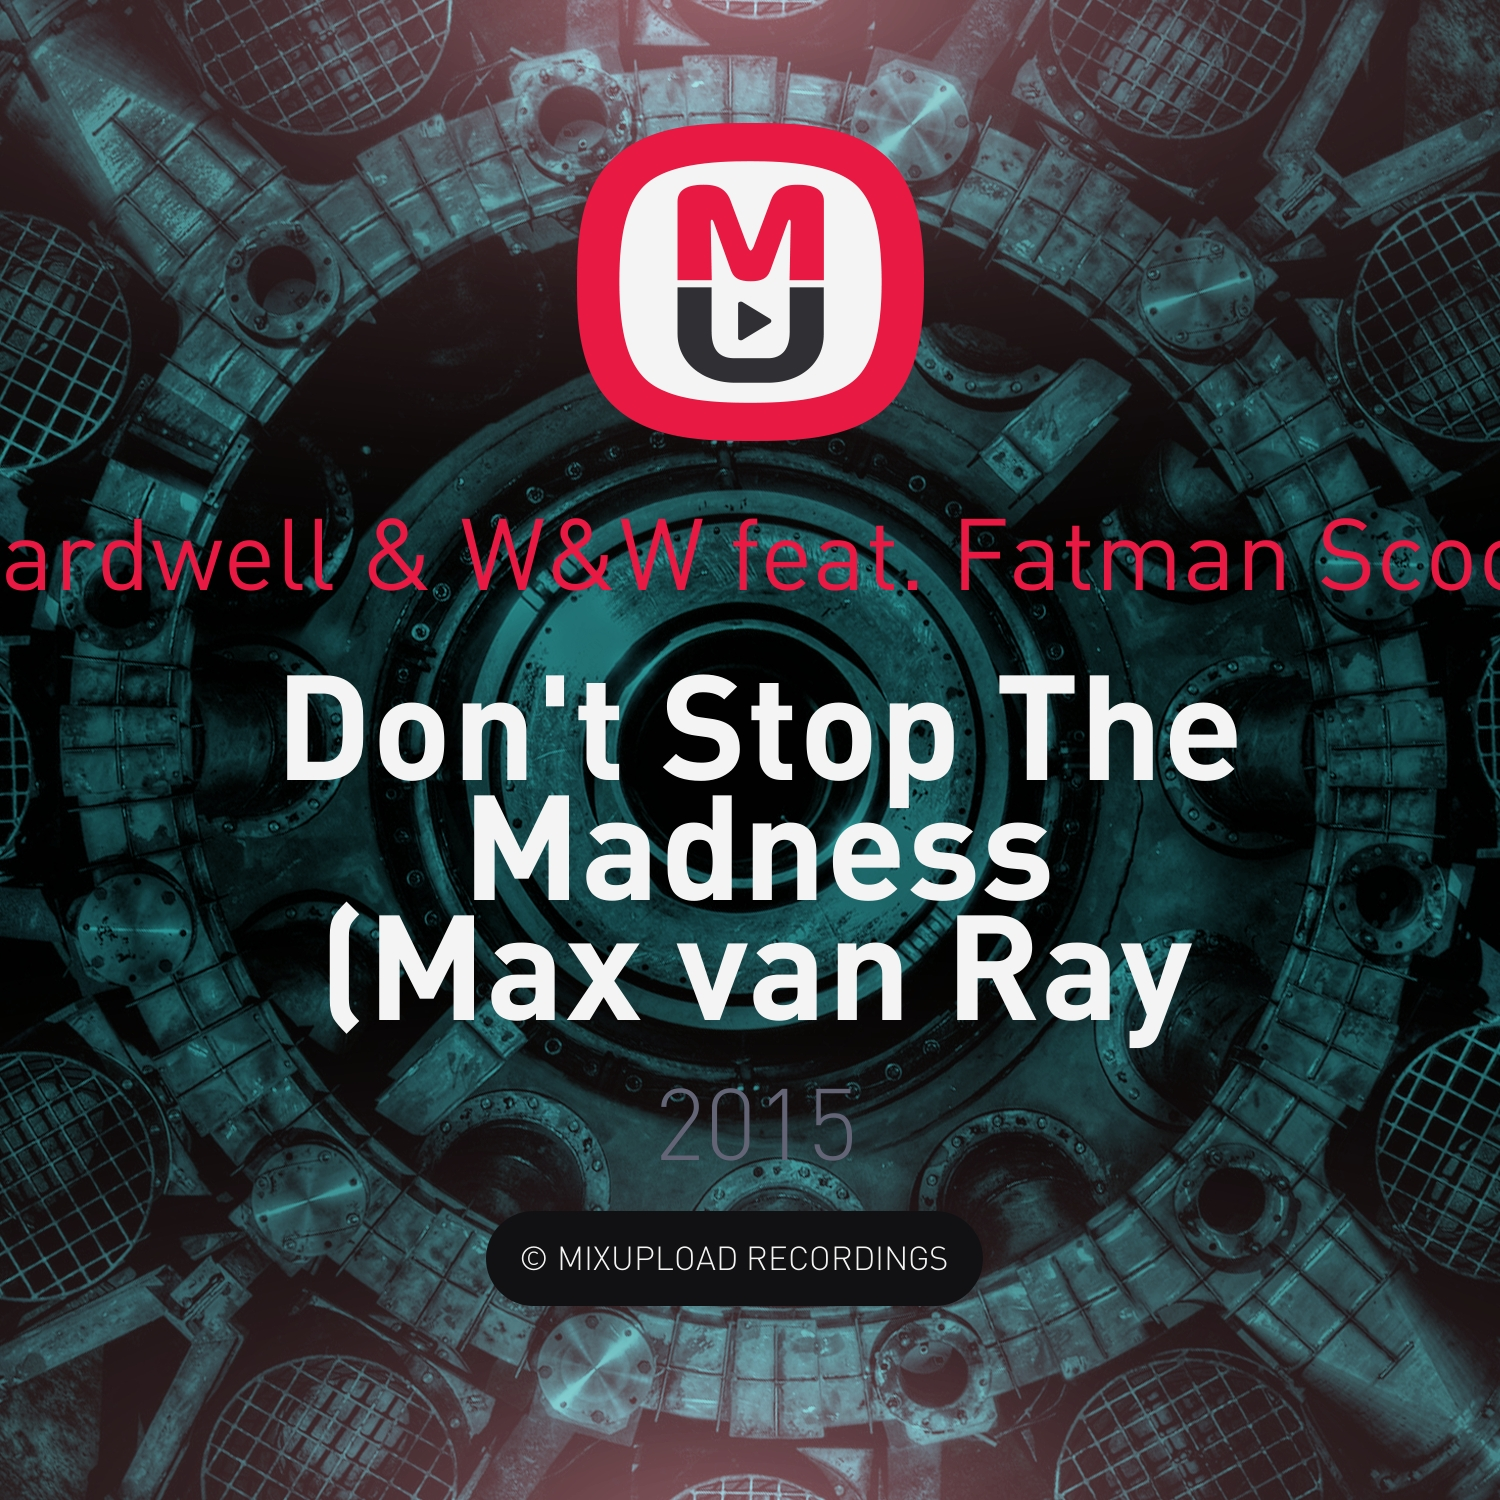 Hardwell & W&W feat. Fatman Scoop - Don\'t Stop The Madness (Max van Ray Bootleg)